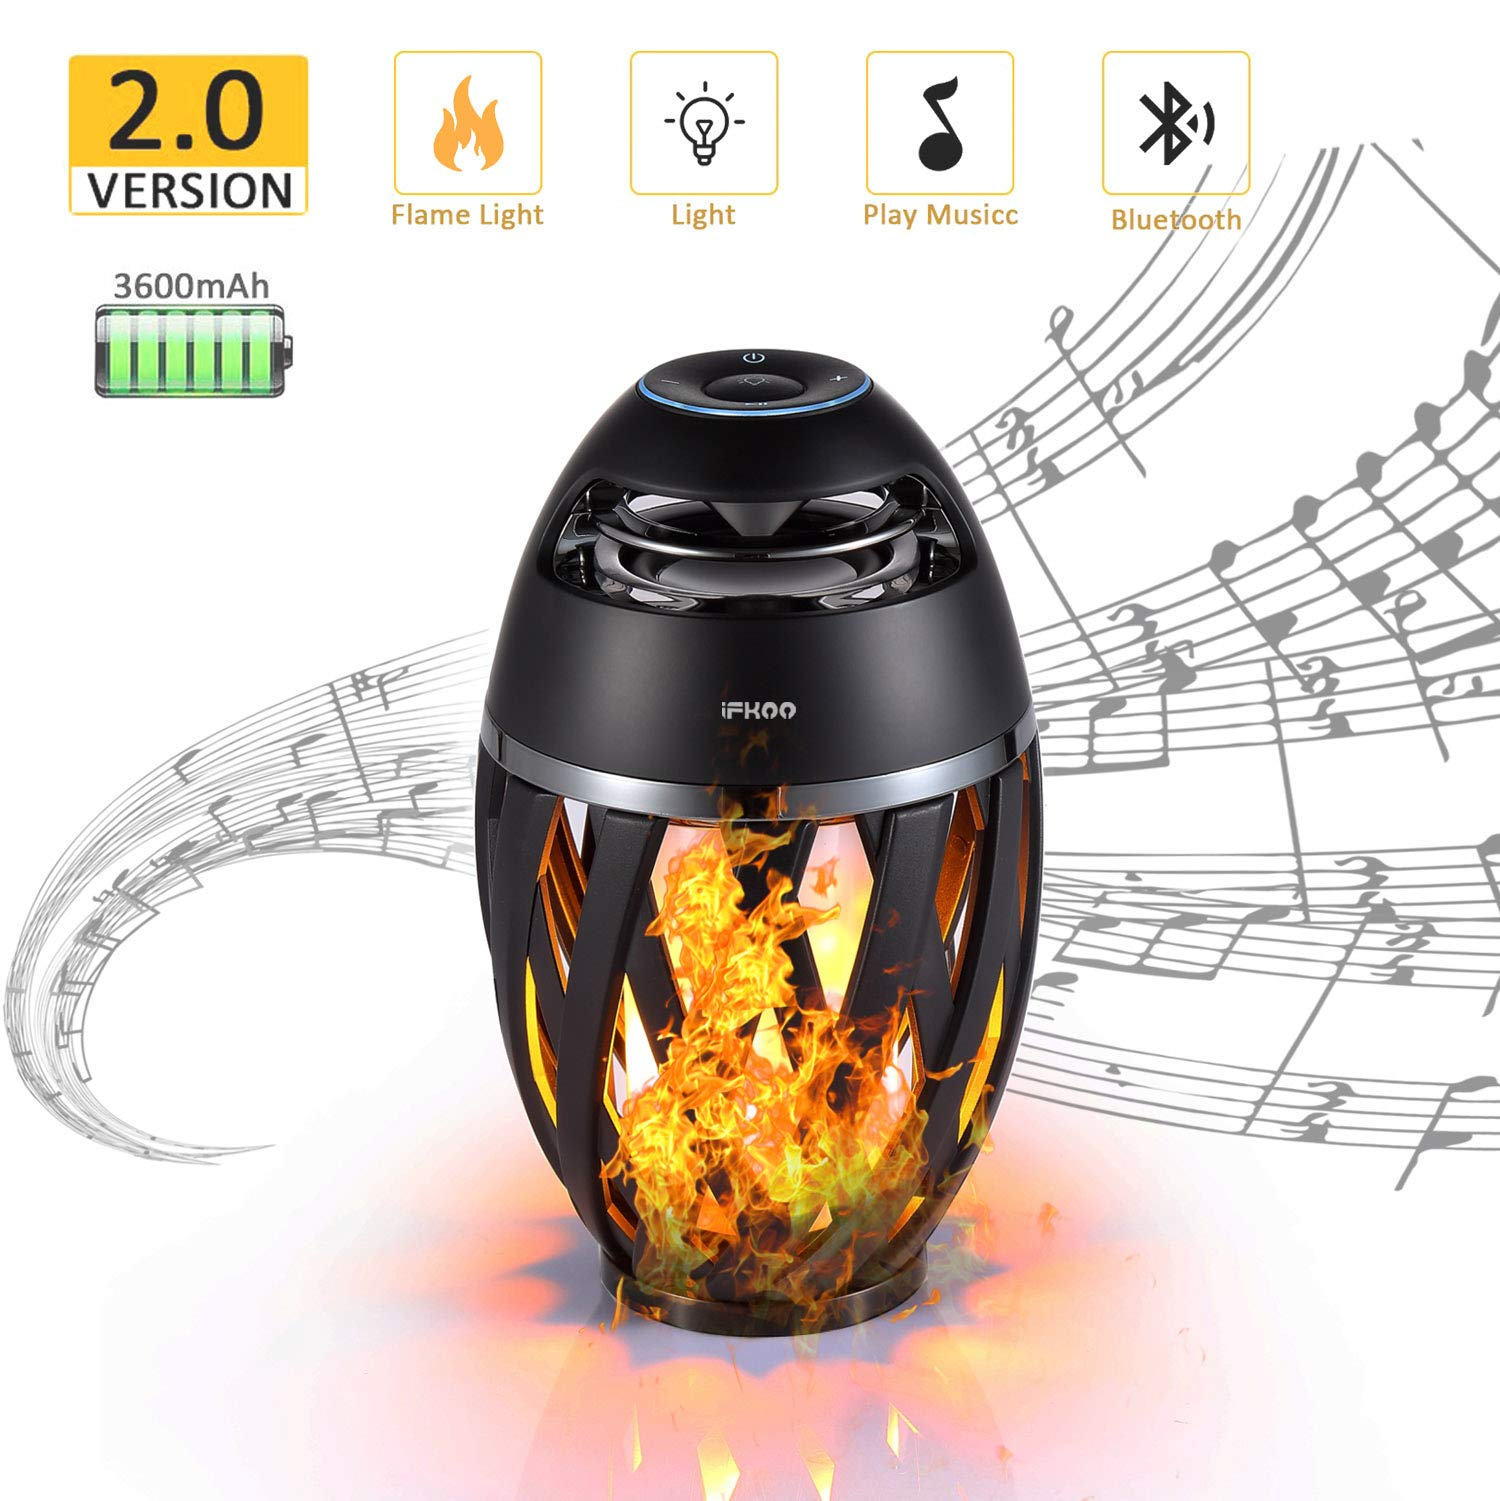 iFkoo Led Wireless Speaker, Flame Ambience Outdoor Speakers with Stereo Sound, Lantern Portable Bluetooth Speaker, Exclusive Bass Up, TWS Supported, Night Light Table Lamp BT 4.2 for iPhone Android